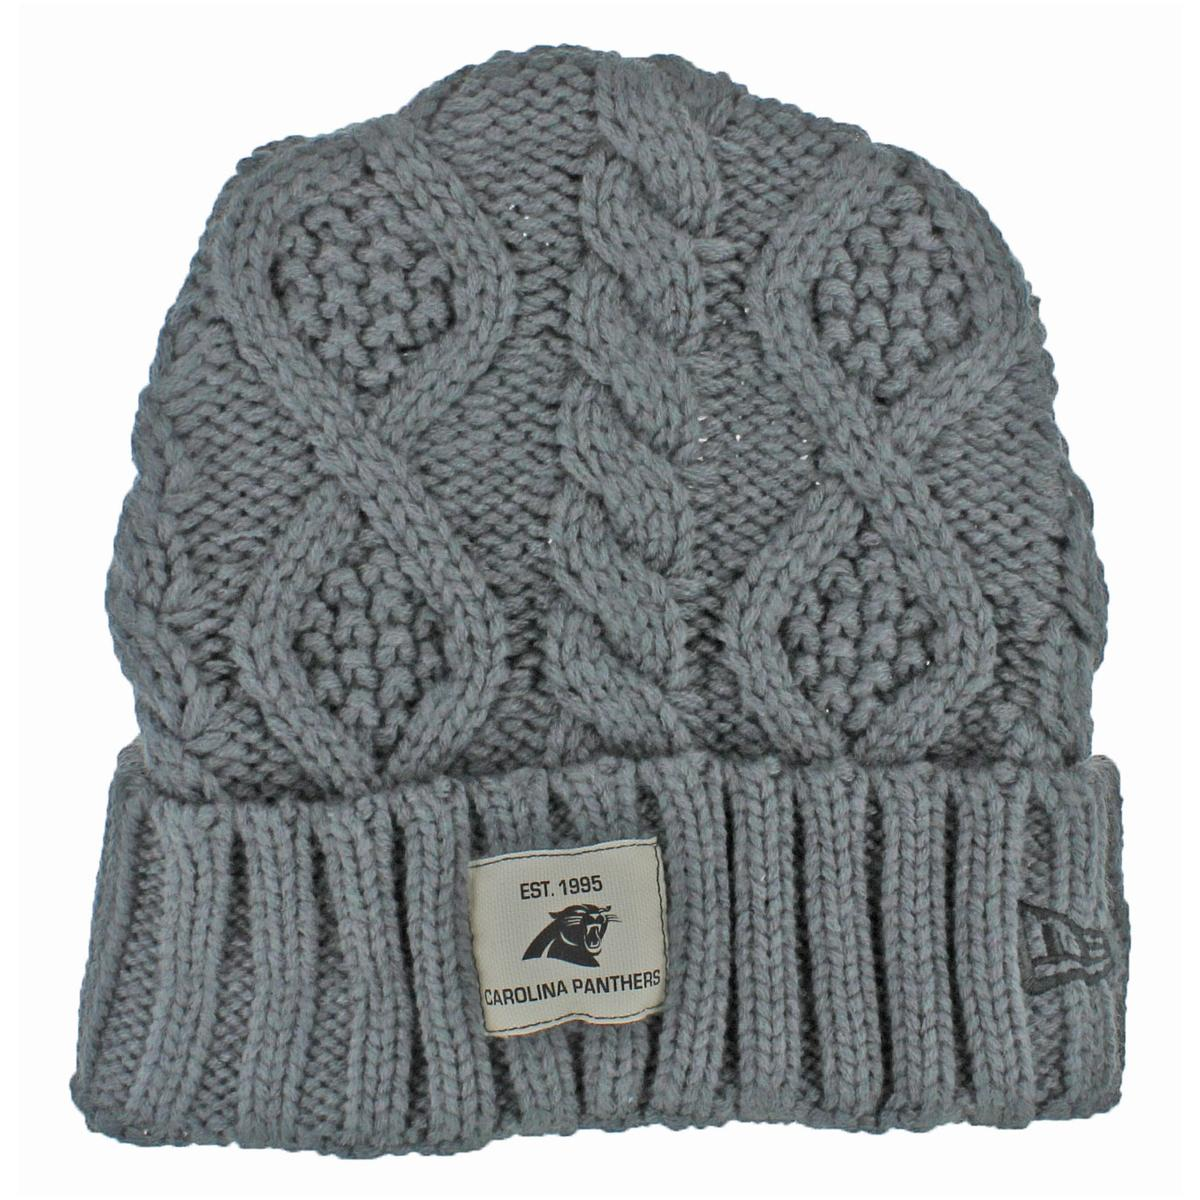 Details about New Era Mens Gray Carolina Panthers Cable Knit Cuffed Beanie  Hat O S BHFO 6239 a2c43dd5a